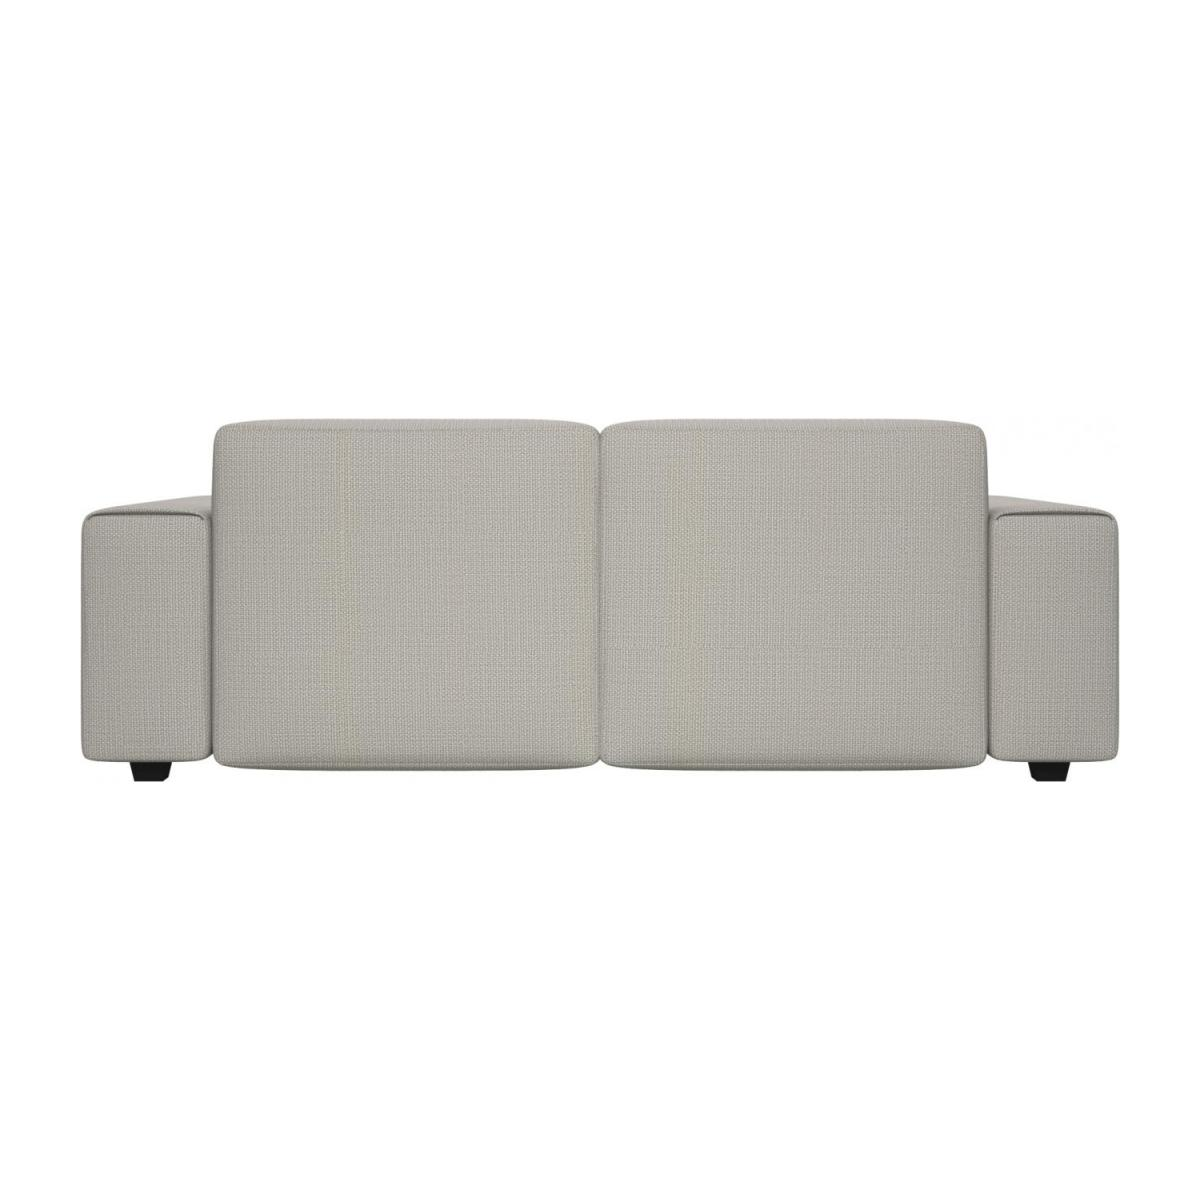 3 seater sofa in Fasoli fabric, snow white n°3